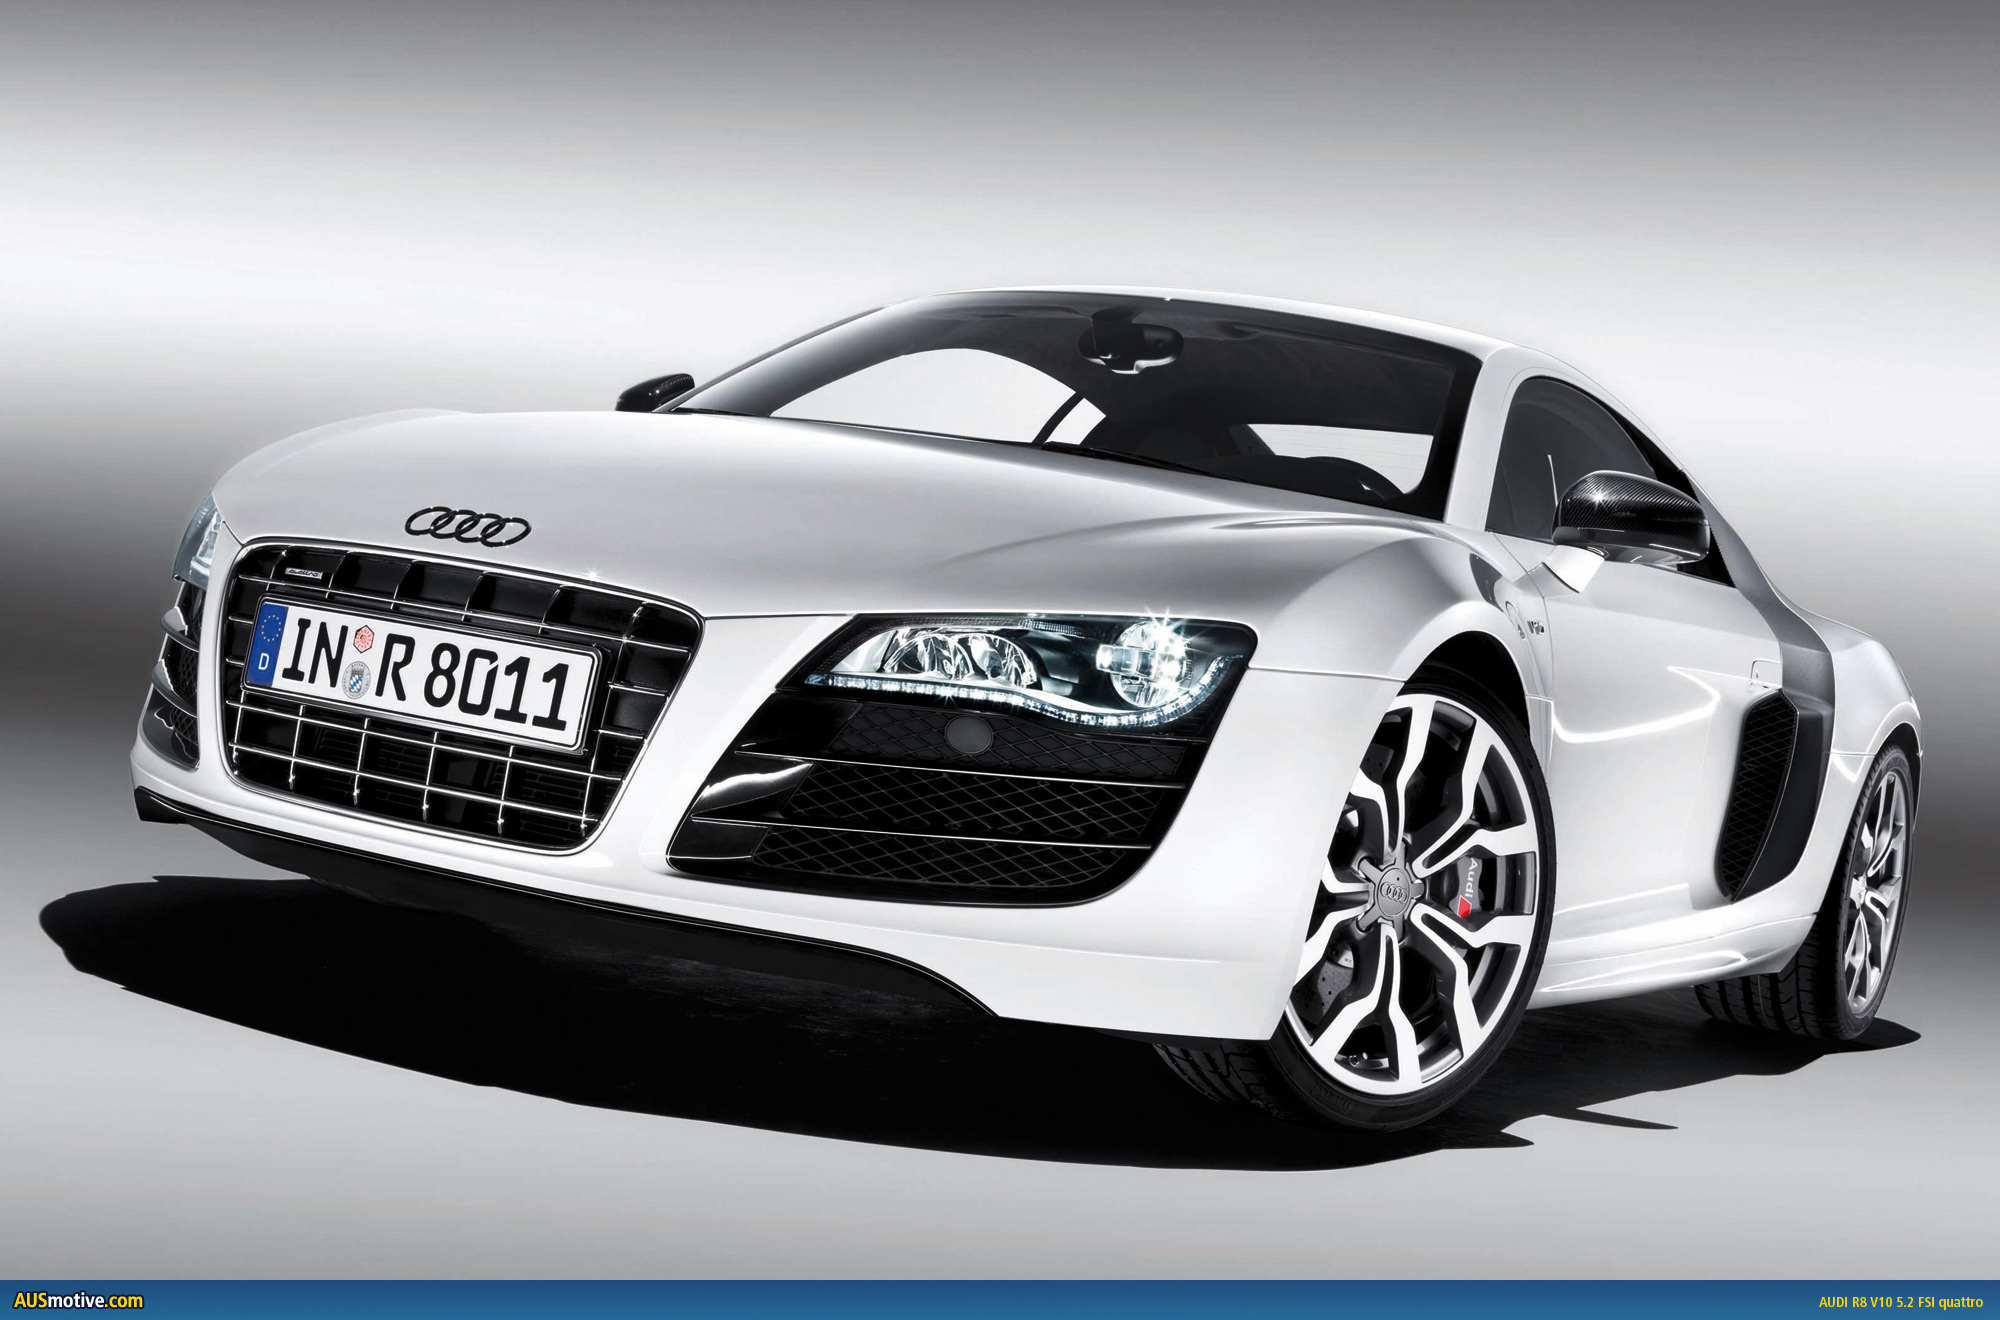 Finally, the R8 has the